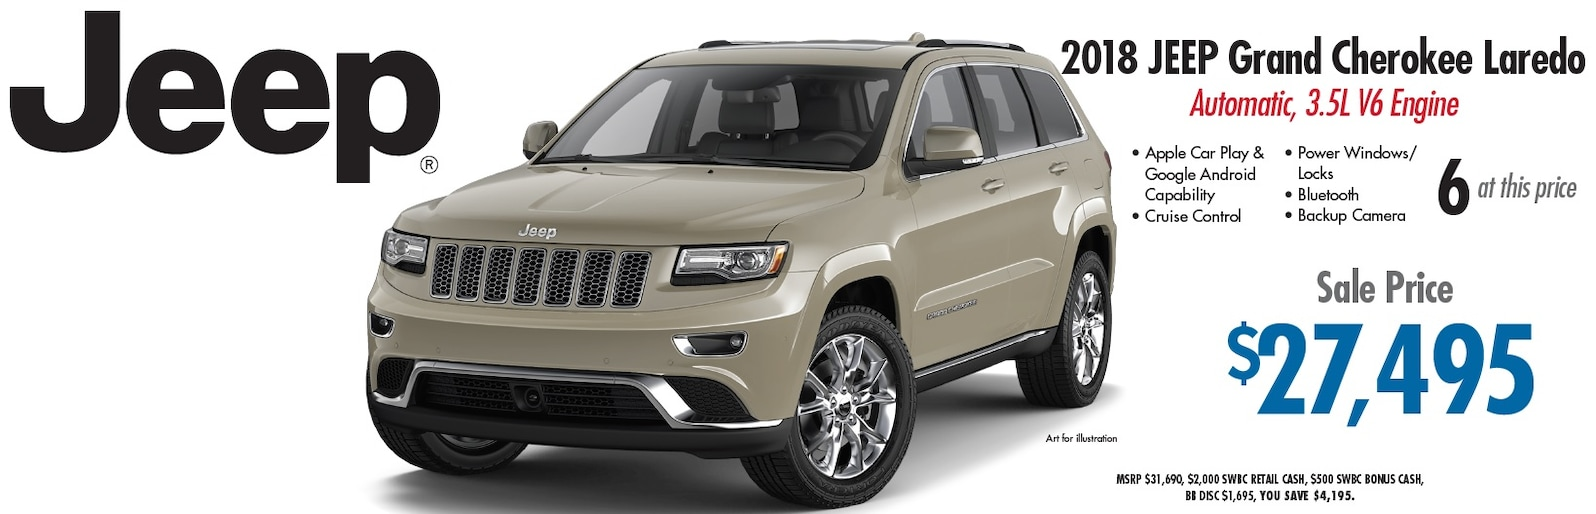 New 2017 2018 Jeep And Used Car Dealer Serving New